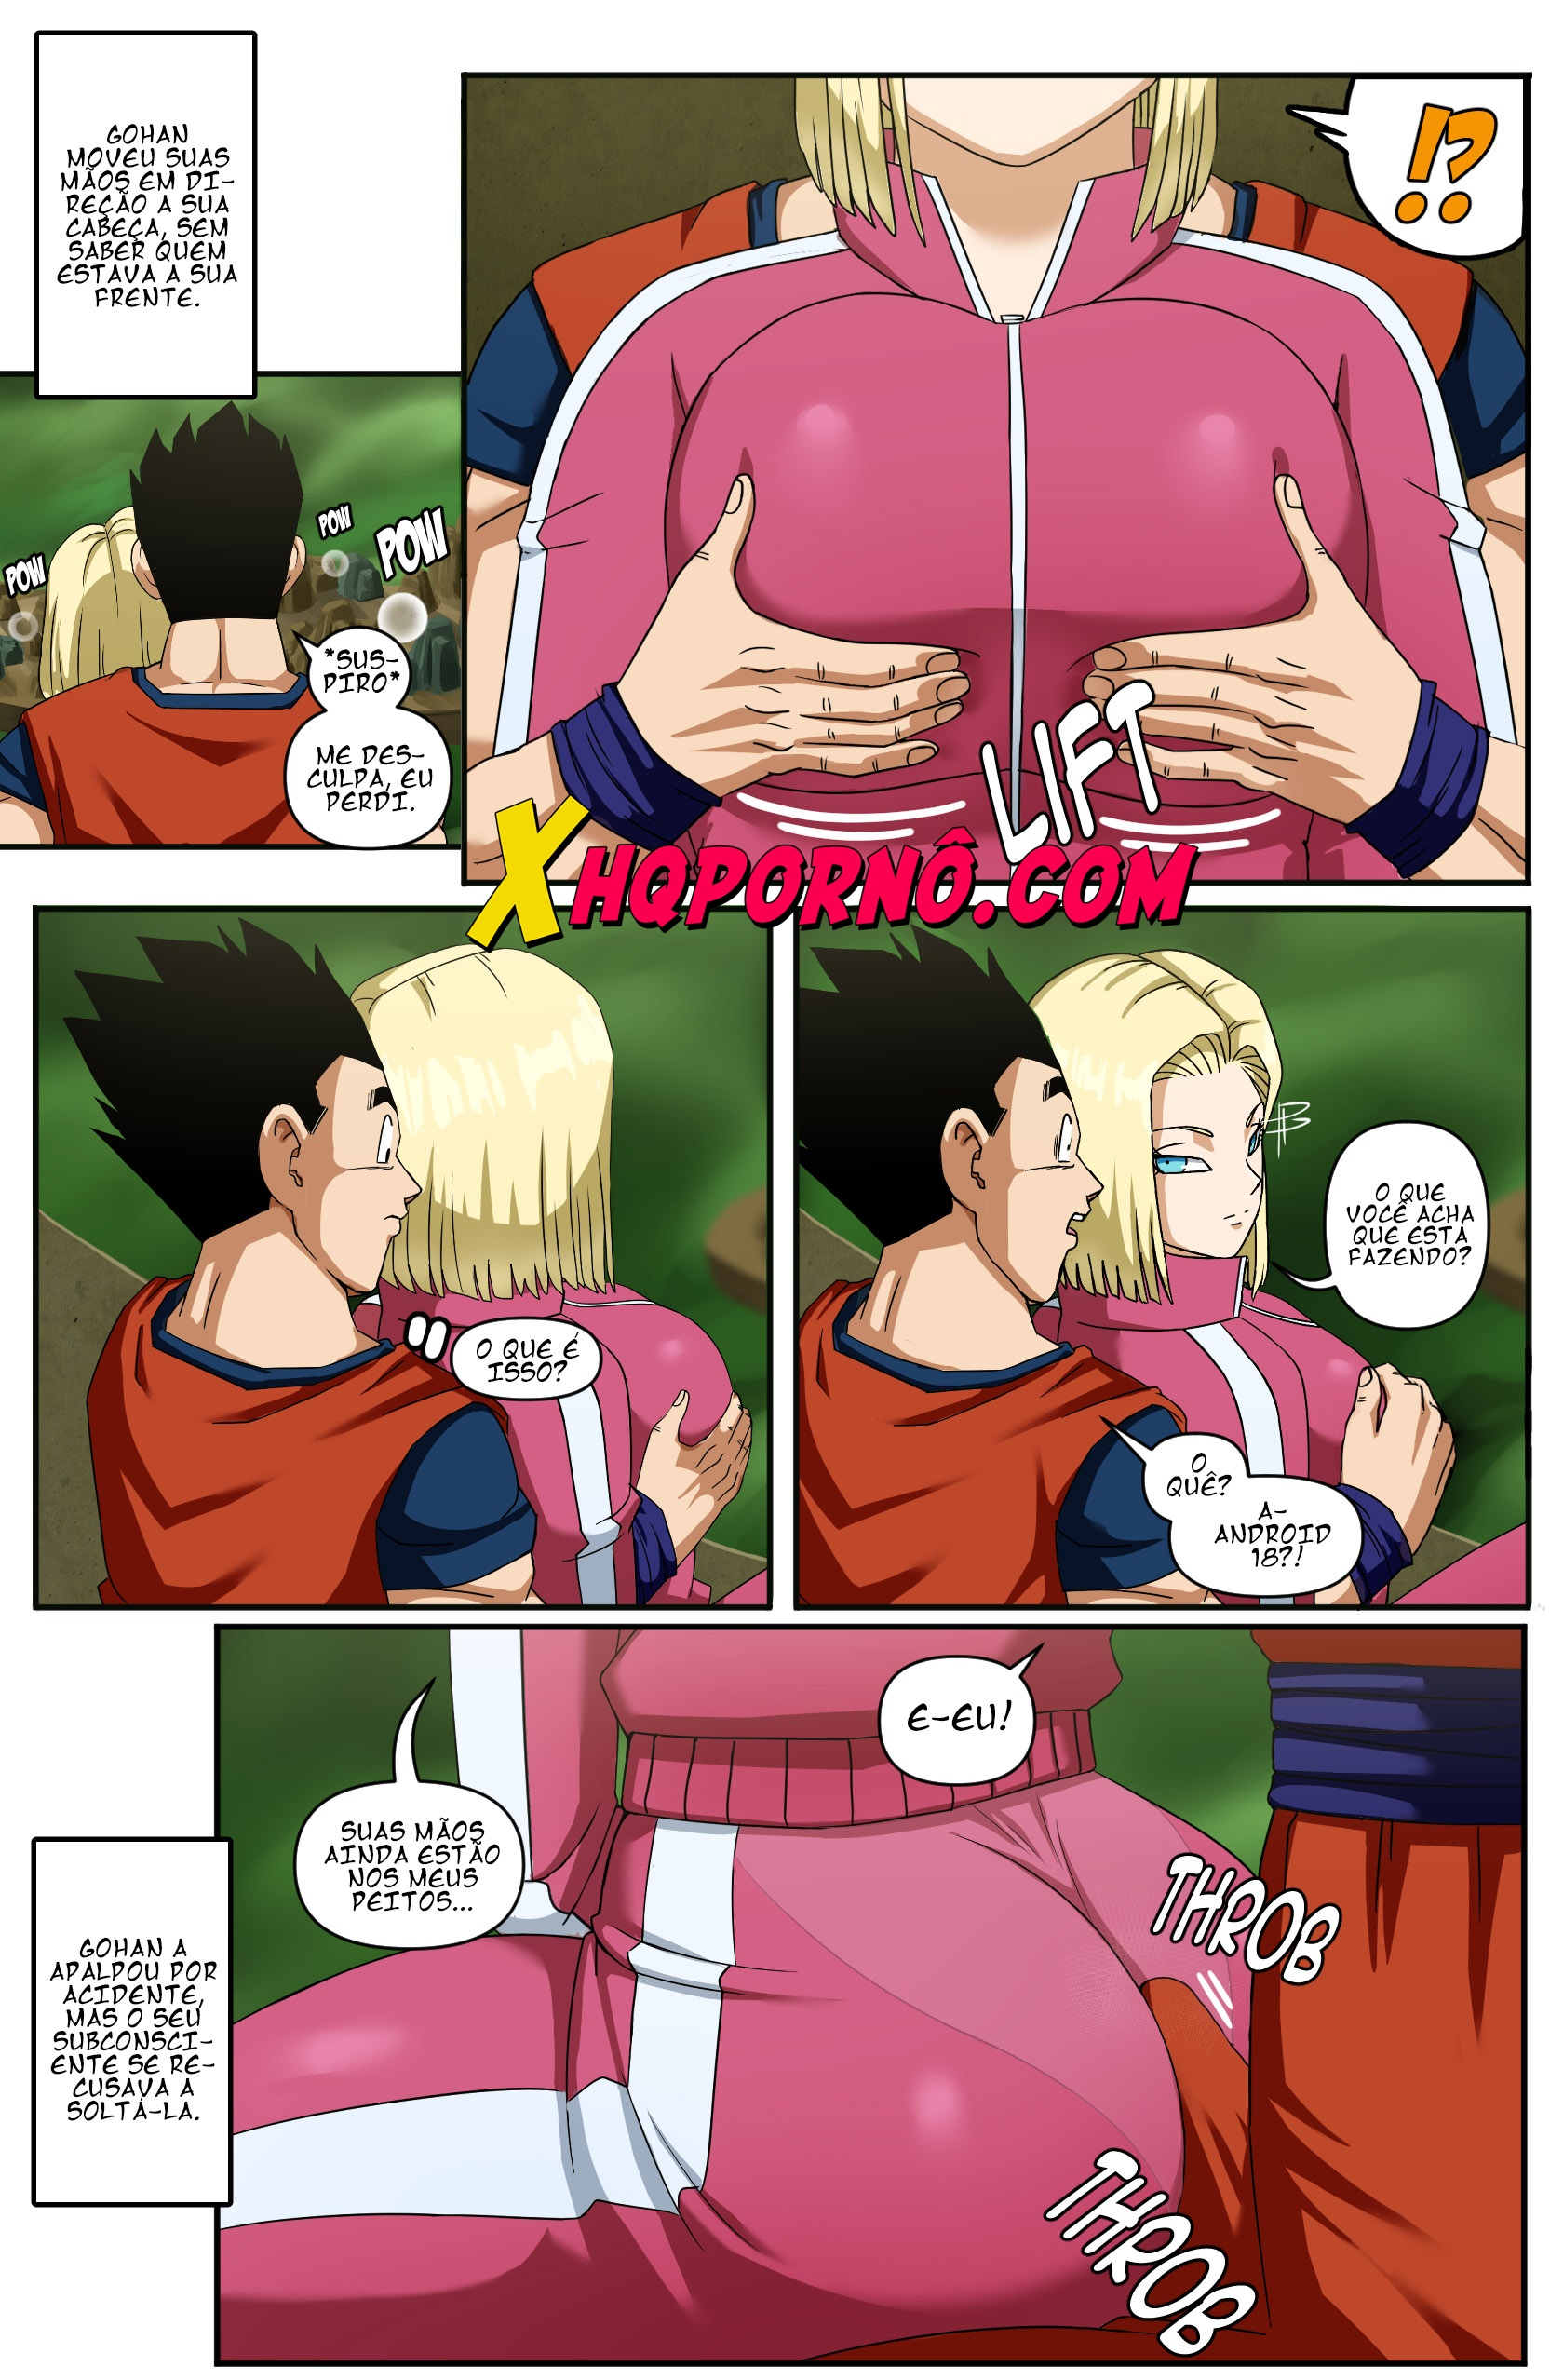 Android 18 and Gohan